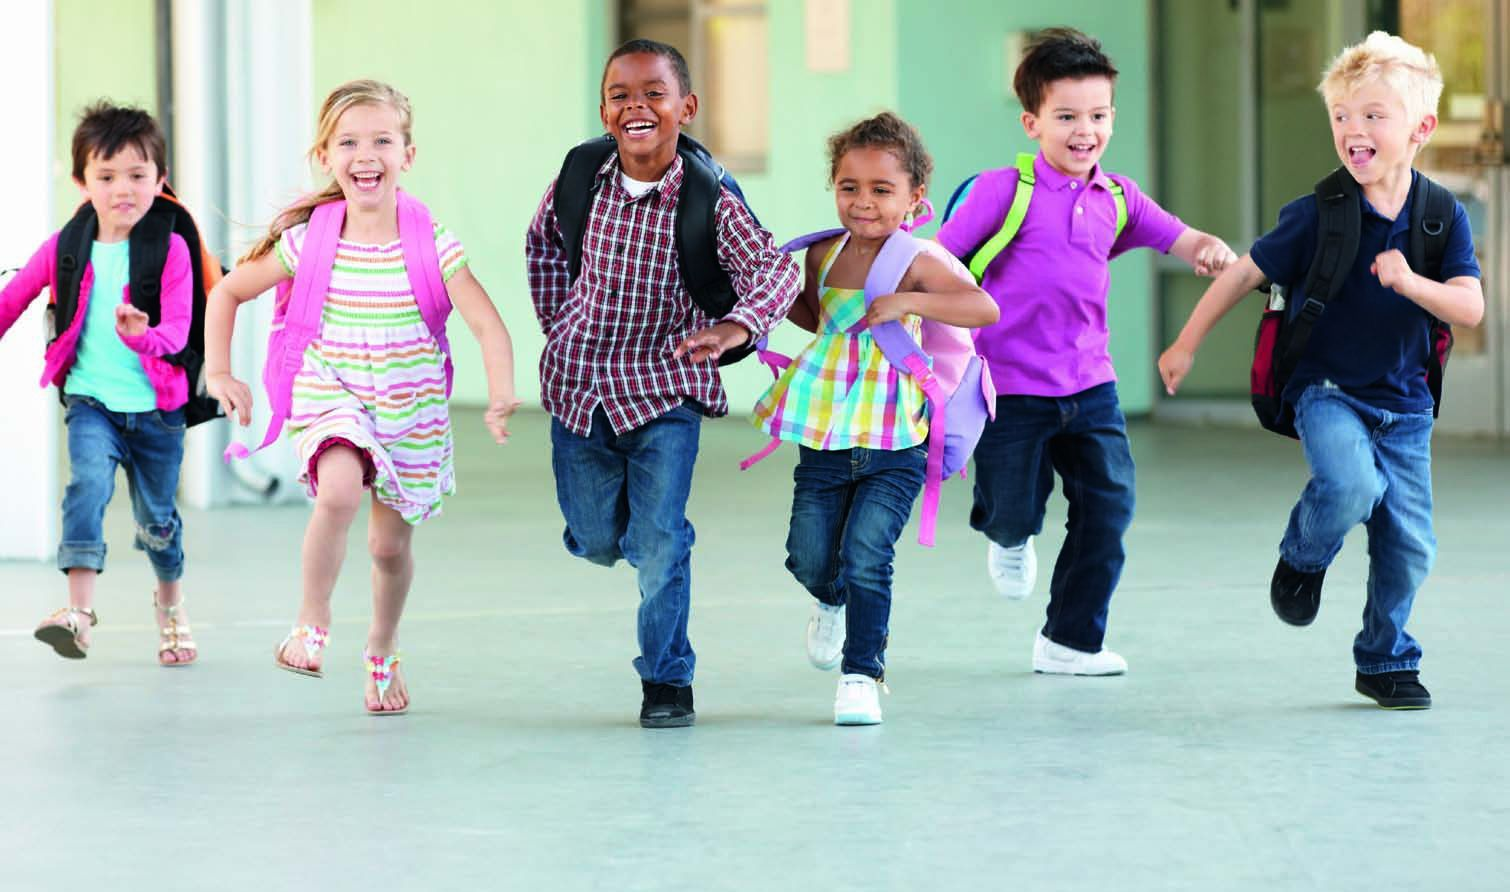 children running in school - photo #1